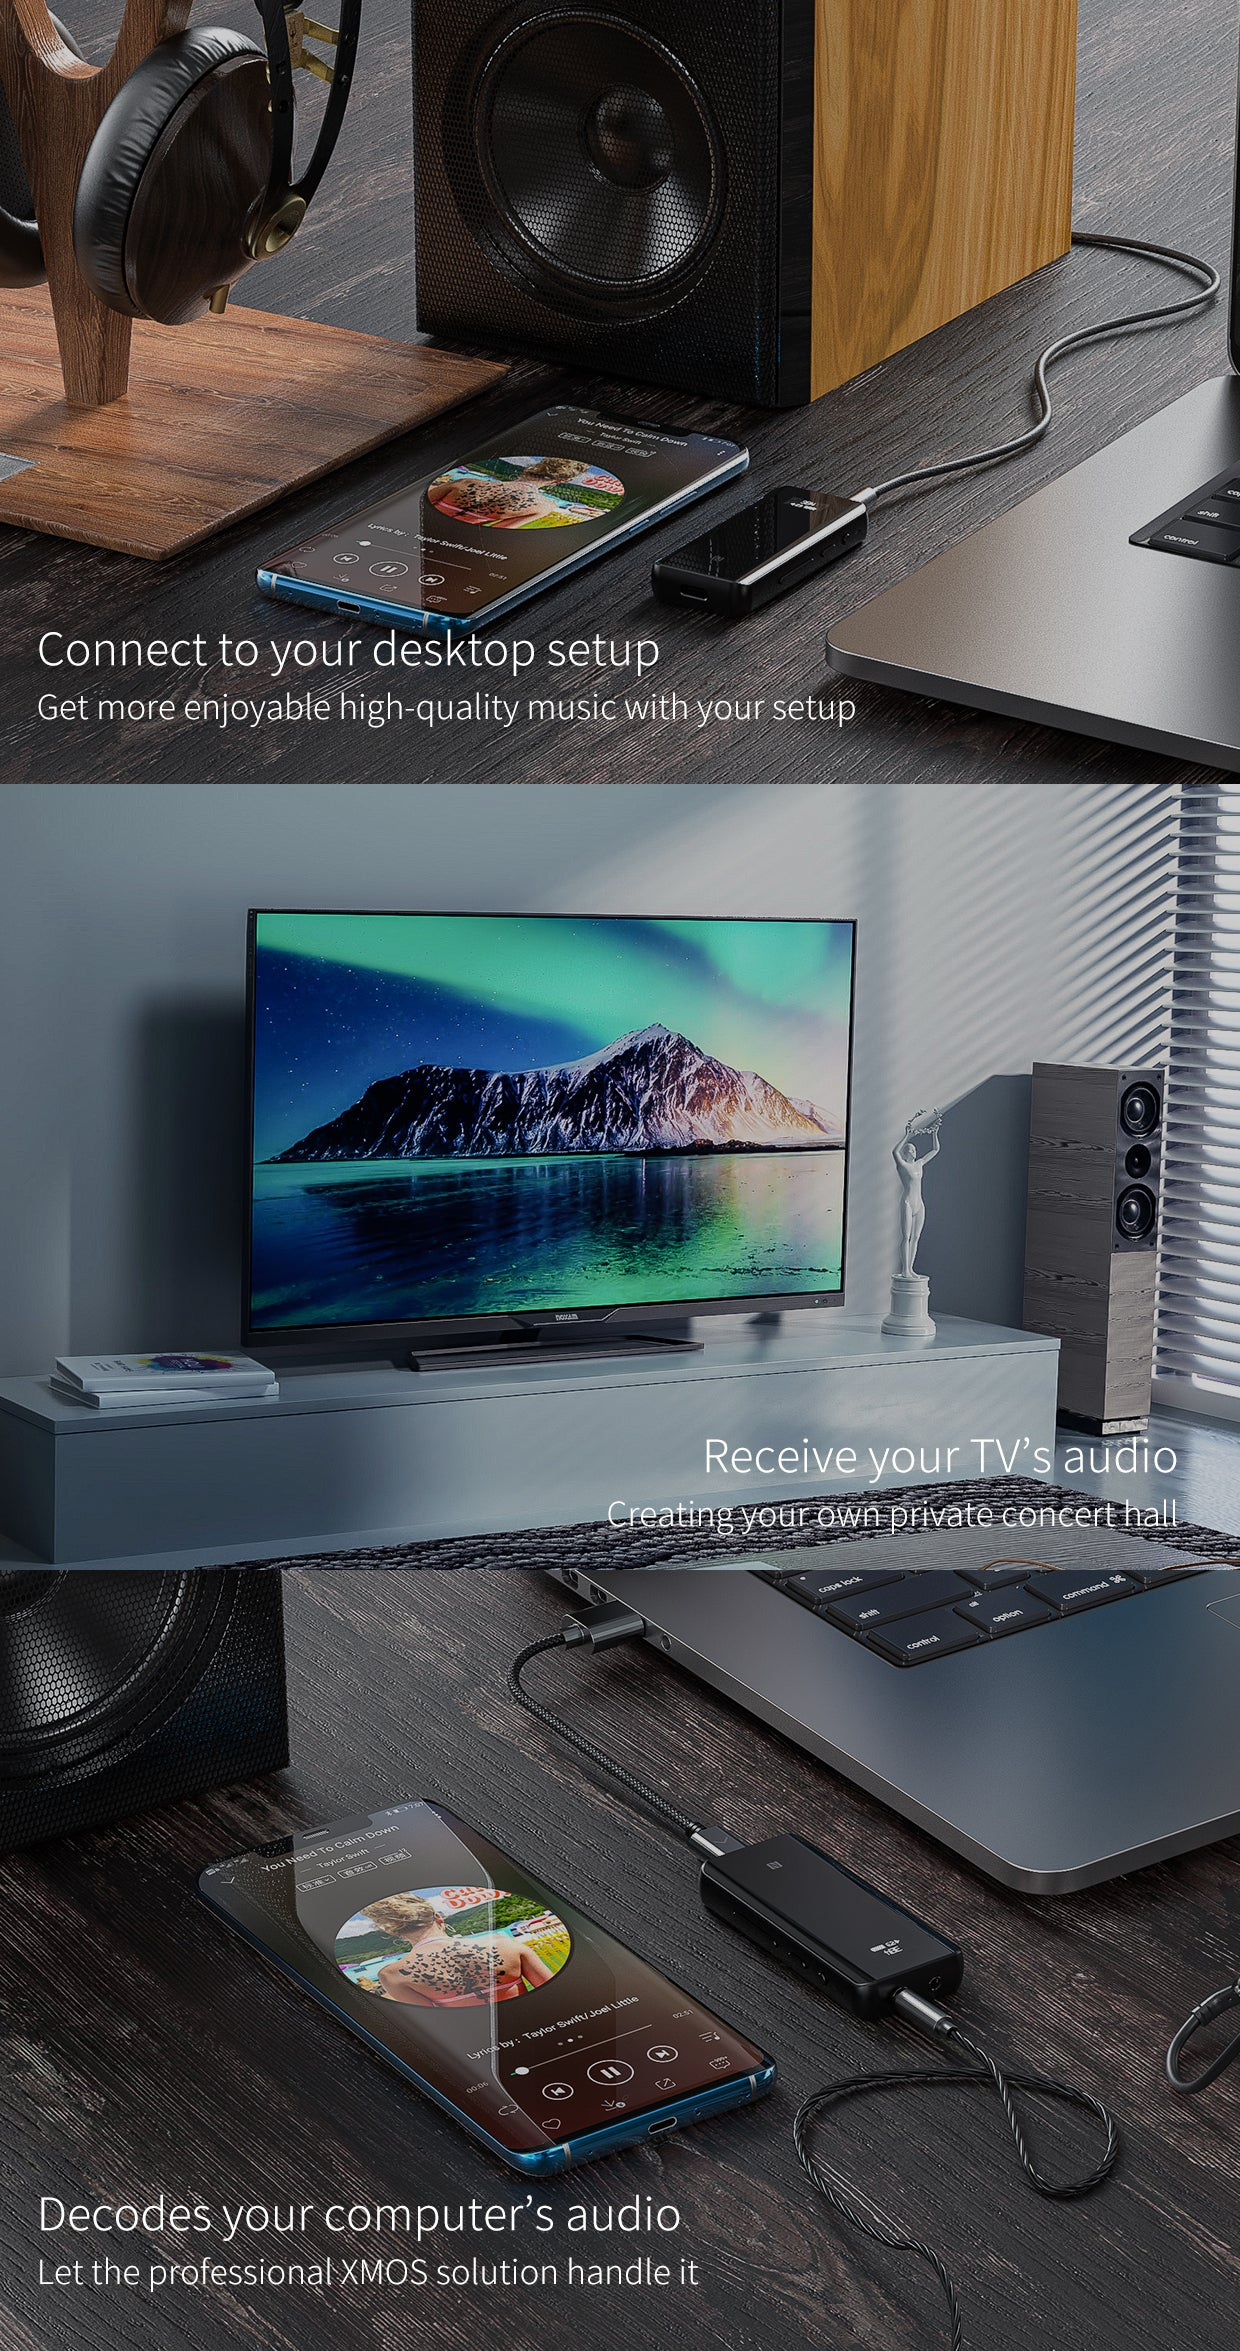 Connect to your desktop setup